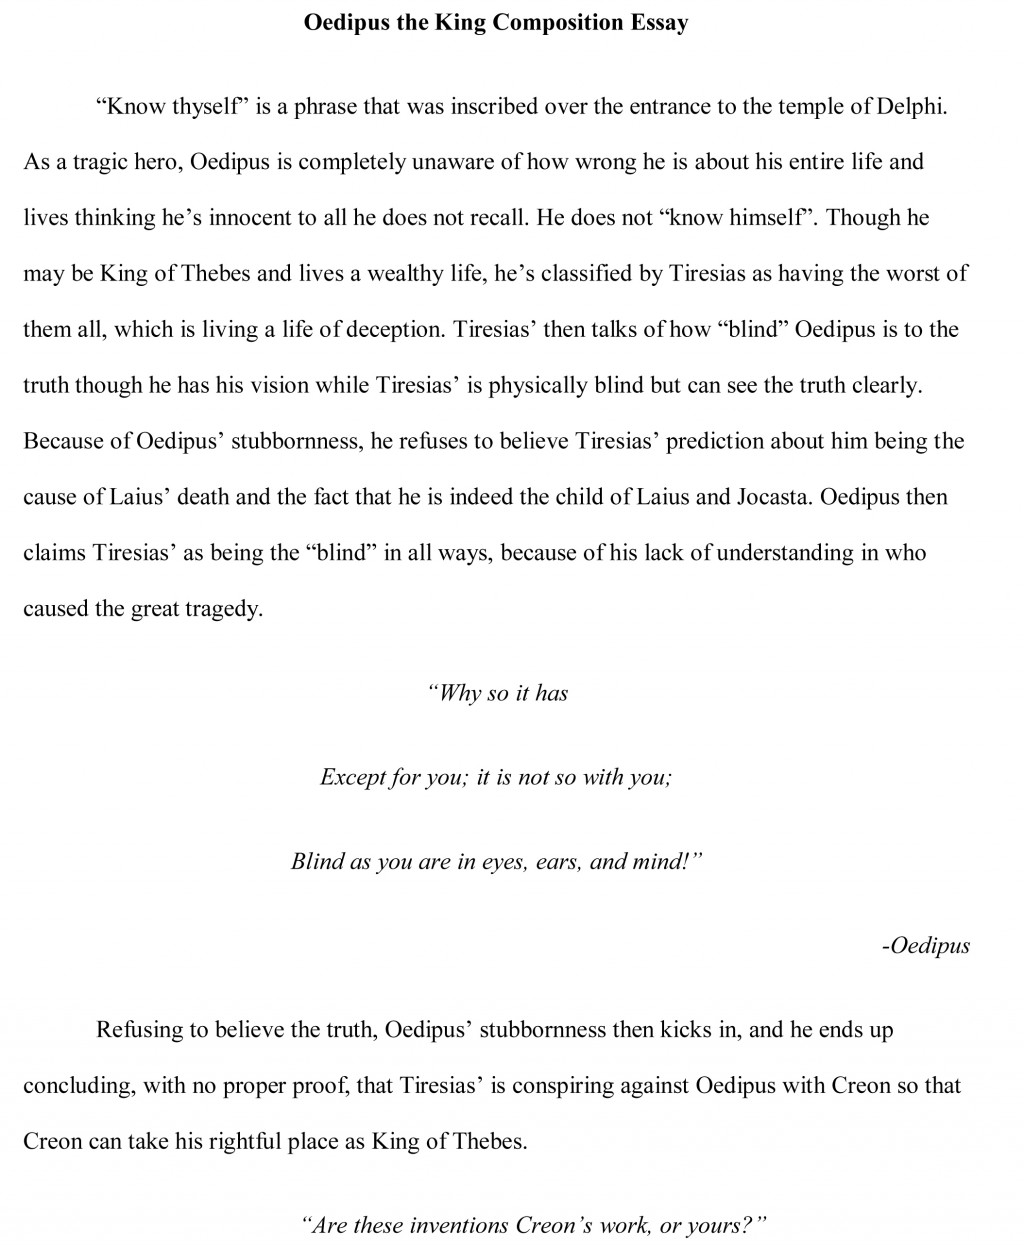 008 How To Make Persuasive Essay Oedipus Free Sample Amazing A Write In Apa Format Longer Introduction Large